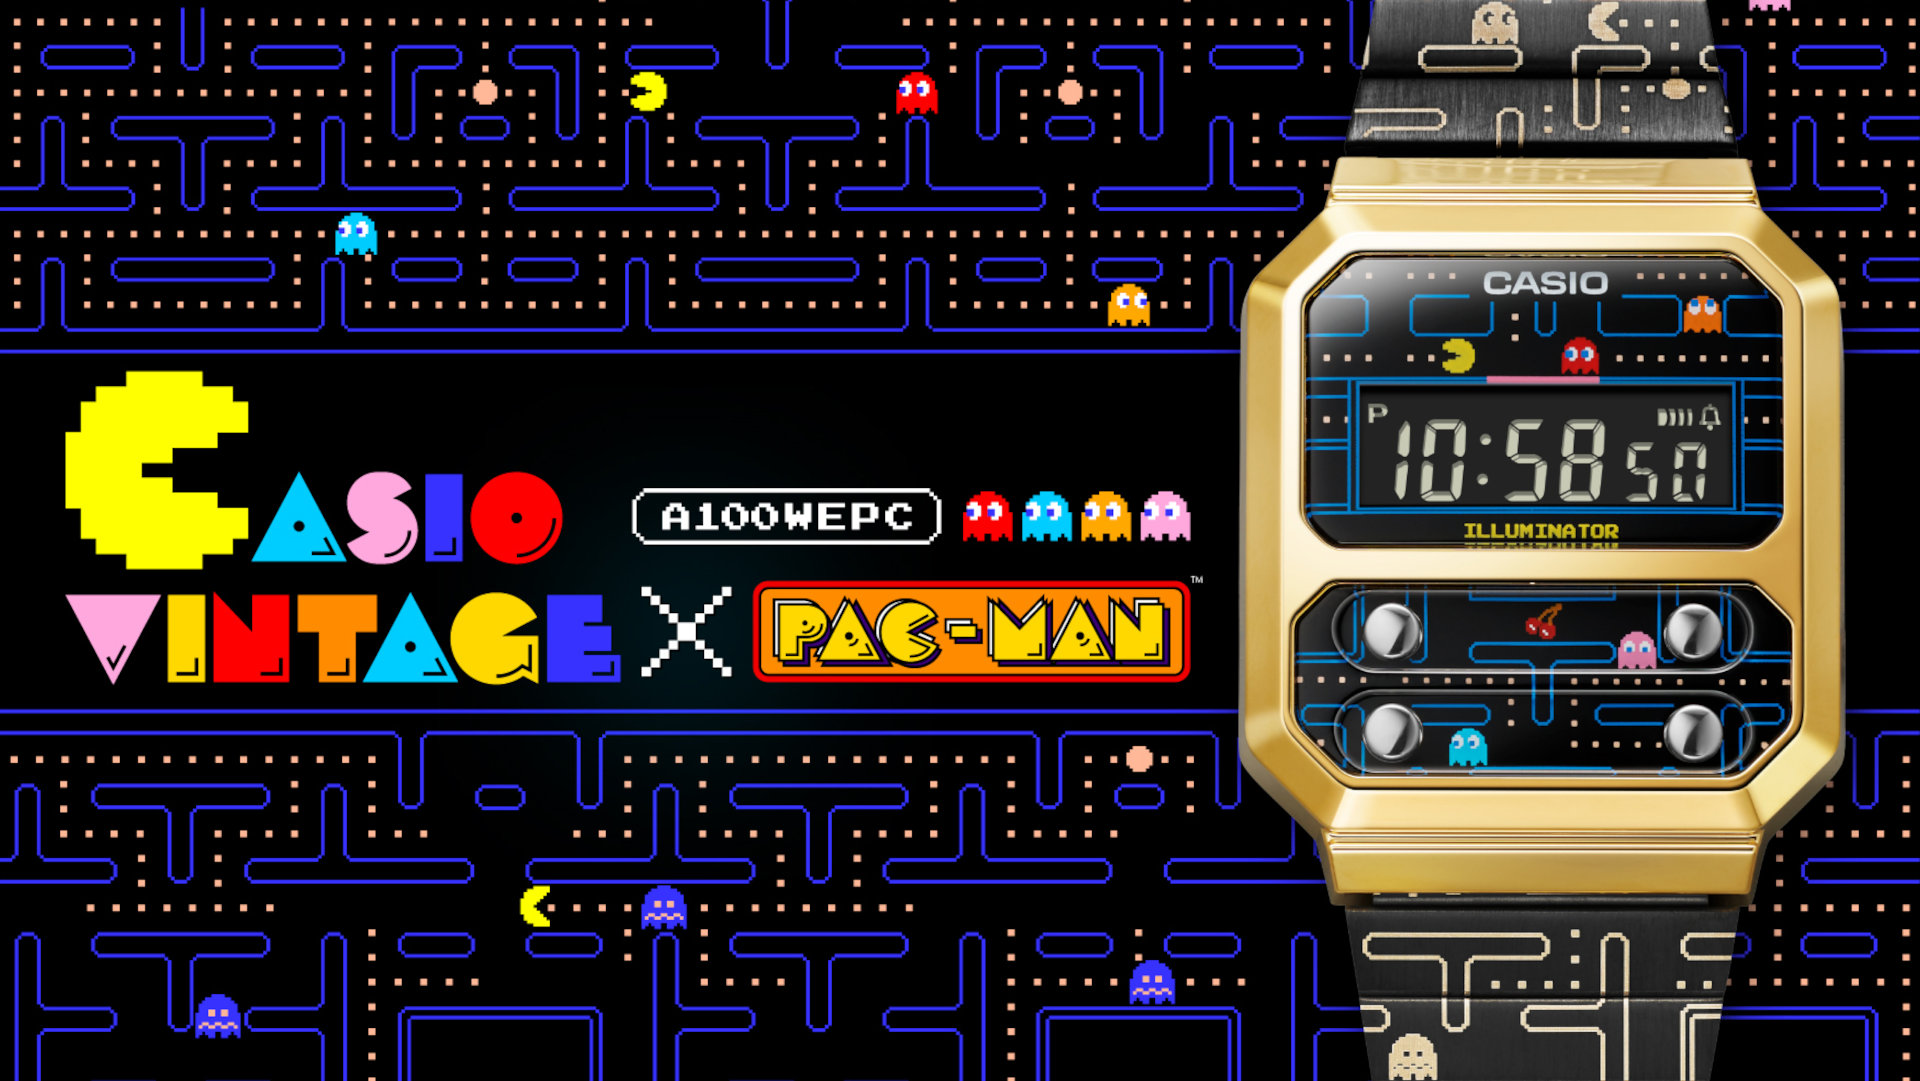 The New Casio A100WEPC PAC-MAN Is 'PAC'-ED to The Brim with Retro Nostalgia